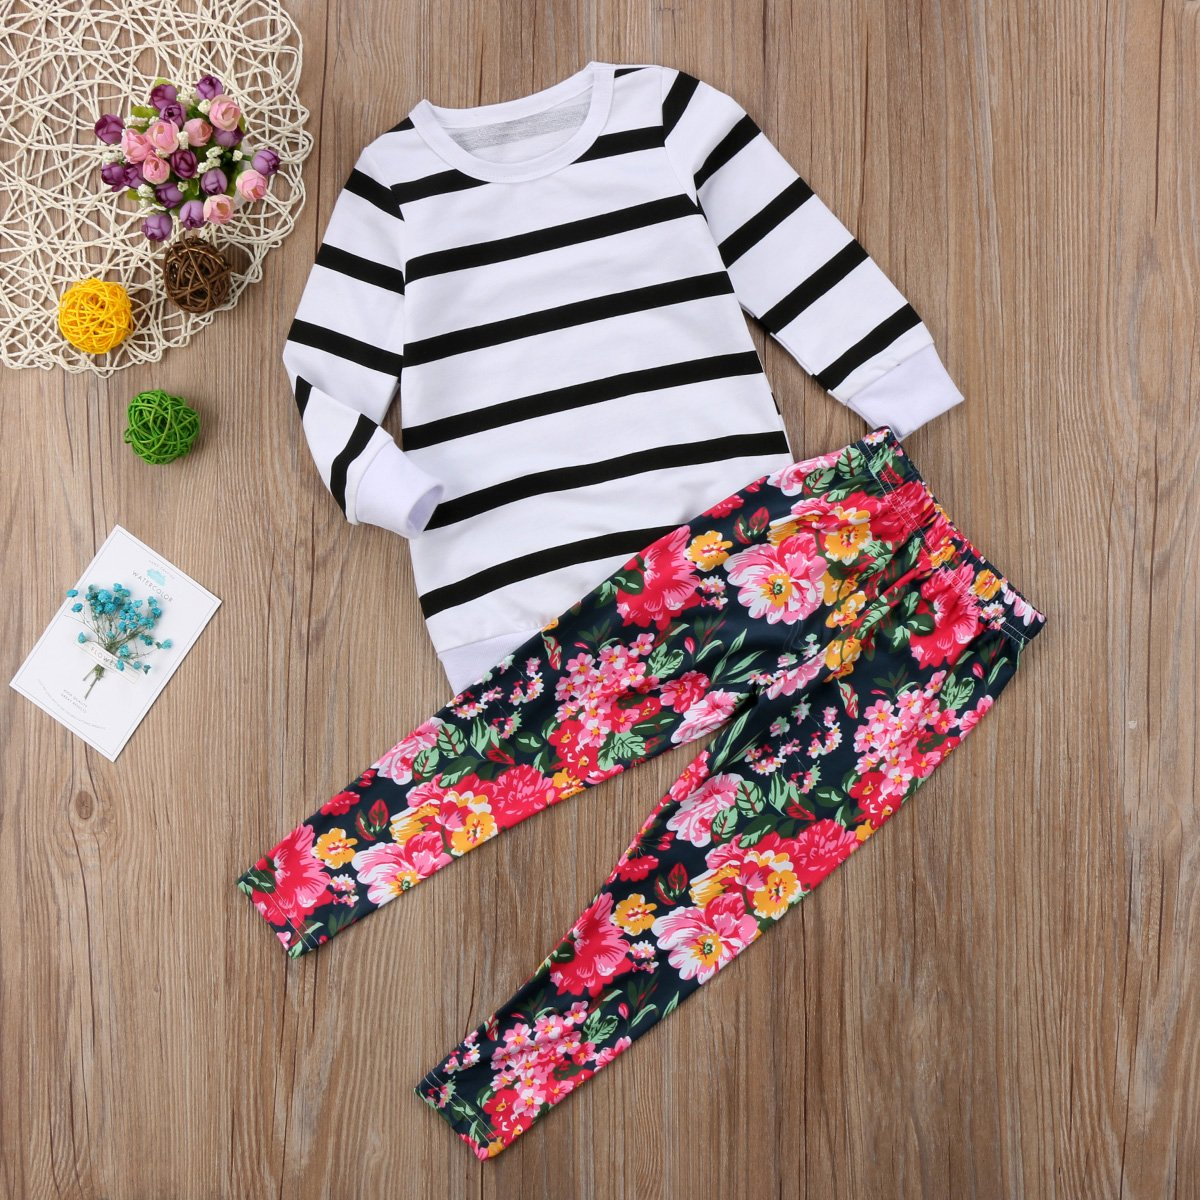 Kids Toddler Baby Girl Long Sleeve Striped T-Shirt Tops+Floral Pants Outfit Set